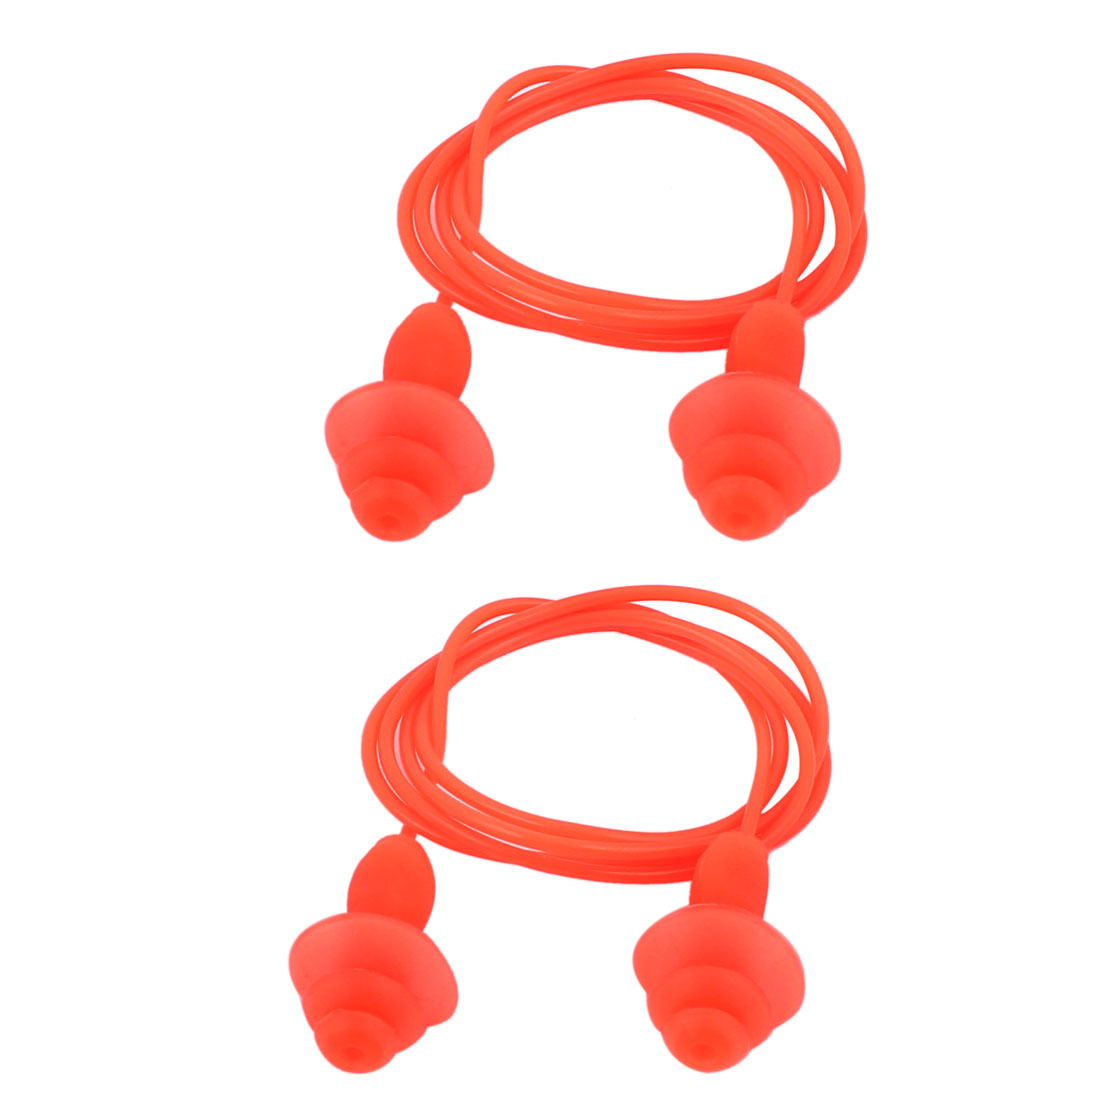 Soft Silicone Swimming String Earplug Earplugs Protector Orange 2pcs